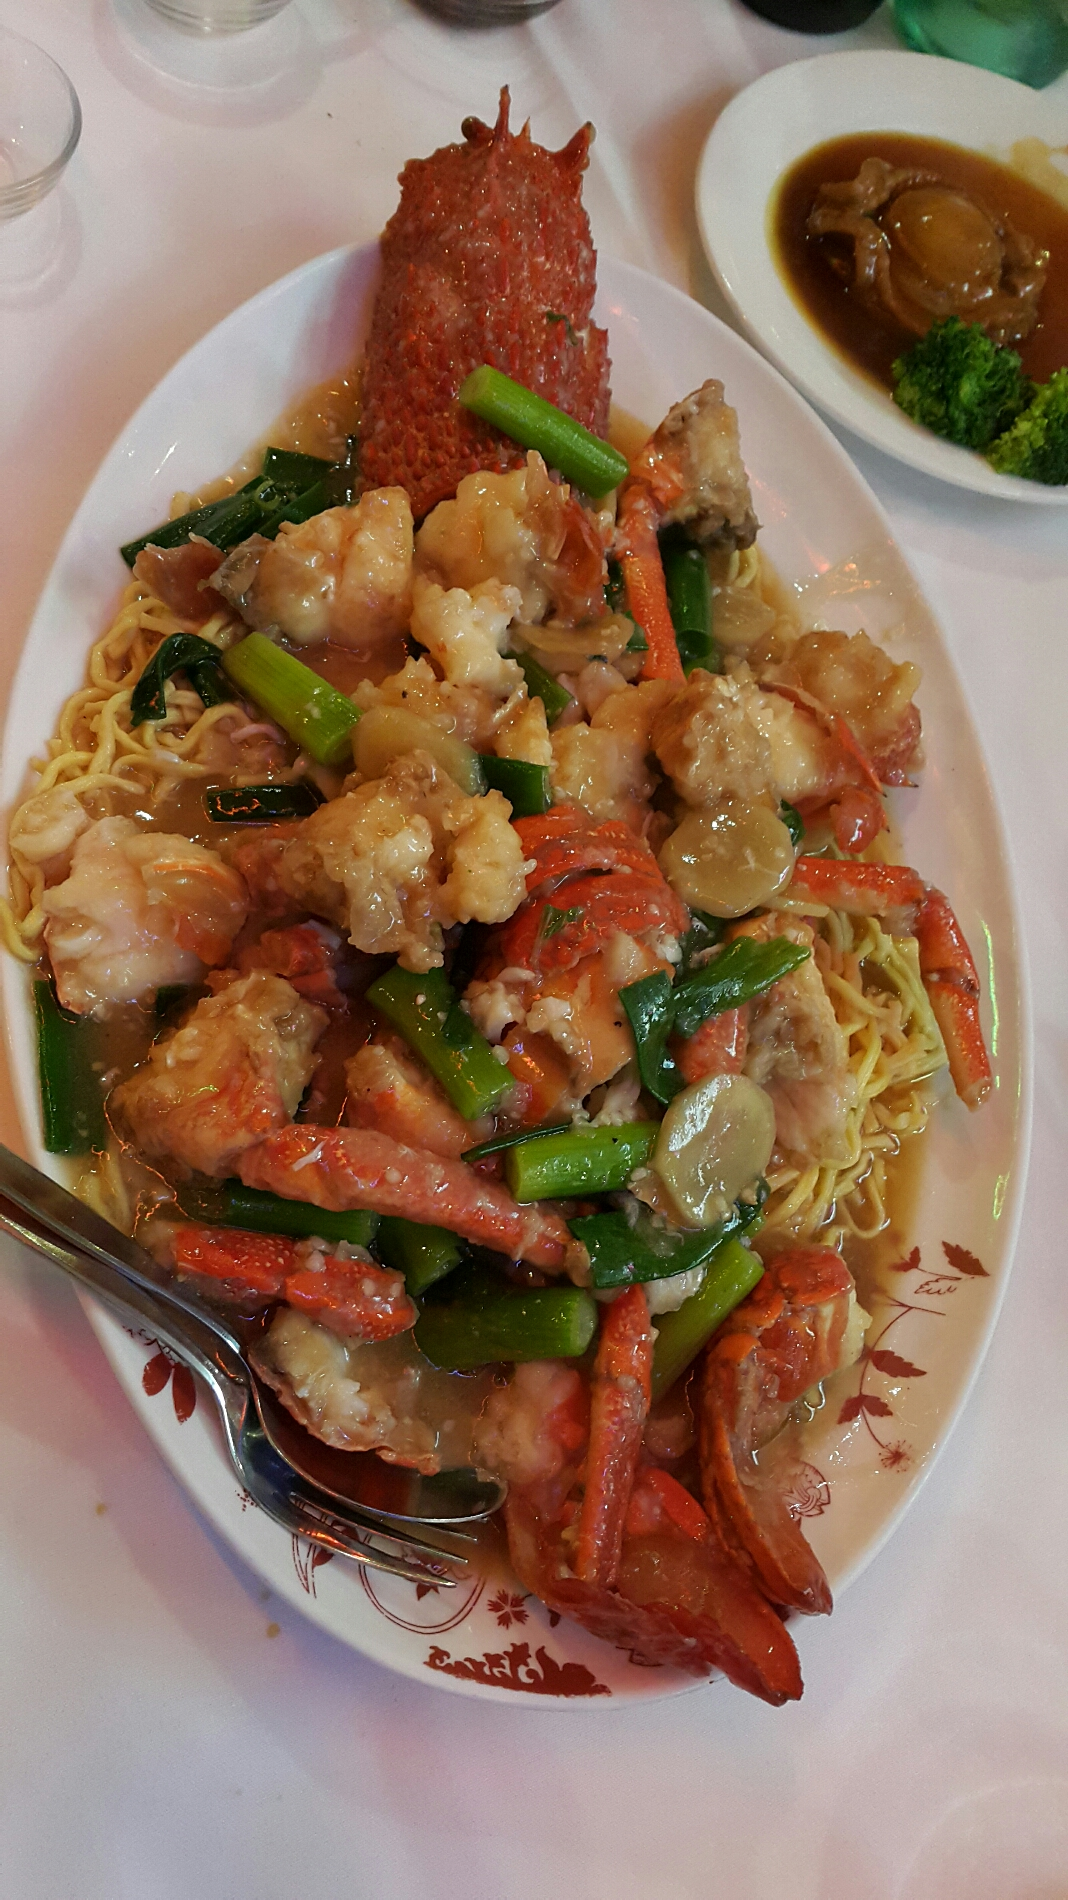 Golden Legends Malaysian Seafood Restaurant | 3041 Gold Coast Highway, Surfers Paradise, Gold Coast, Surfers Paradise, Queensland 4217 | +61 7 5504 6398